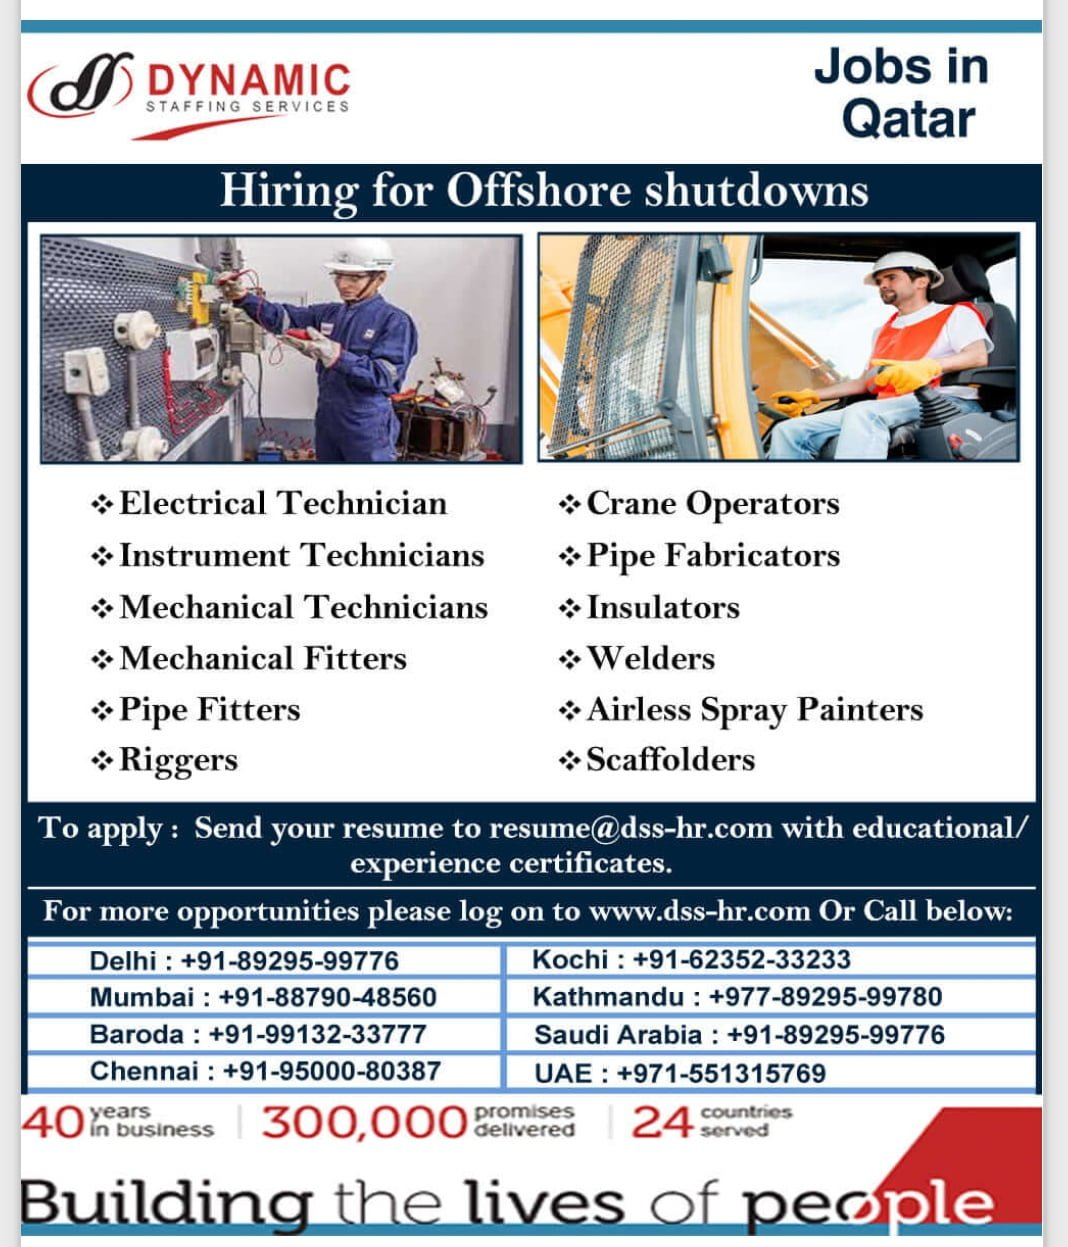 HIRING FOR OFFSHORE SHUTDOWNS-QATAR